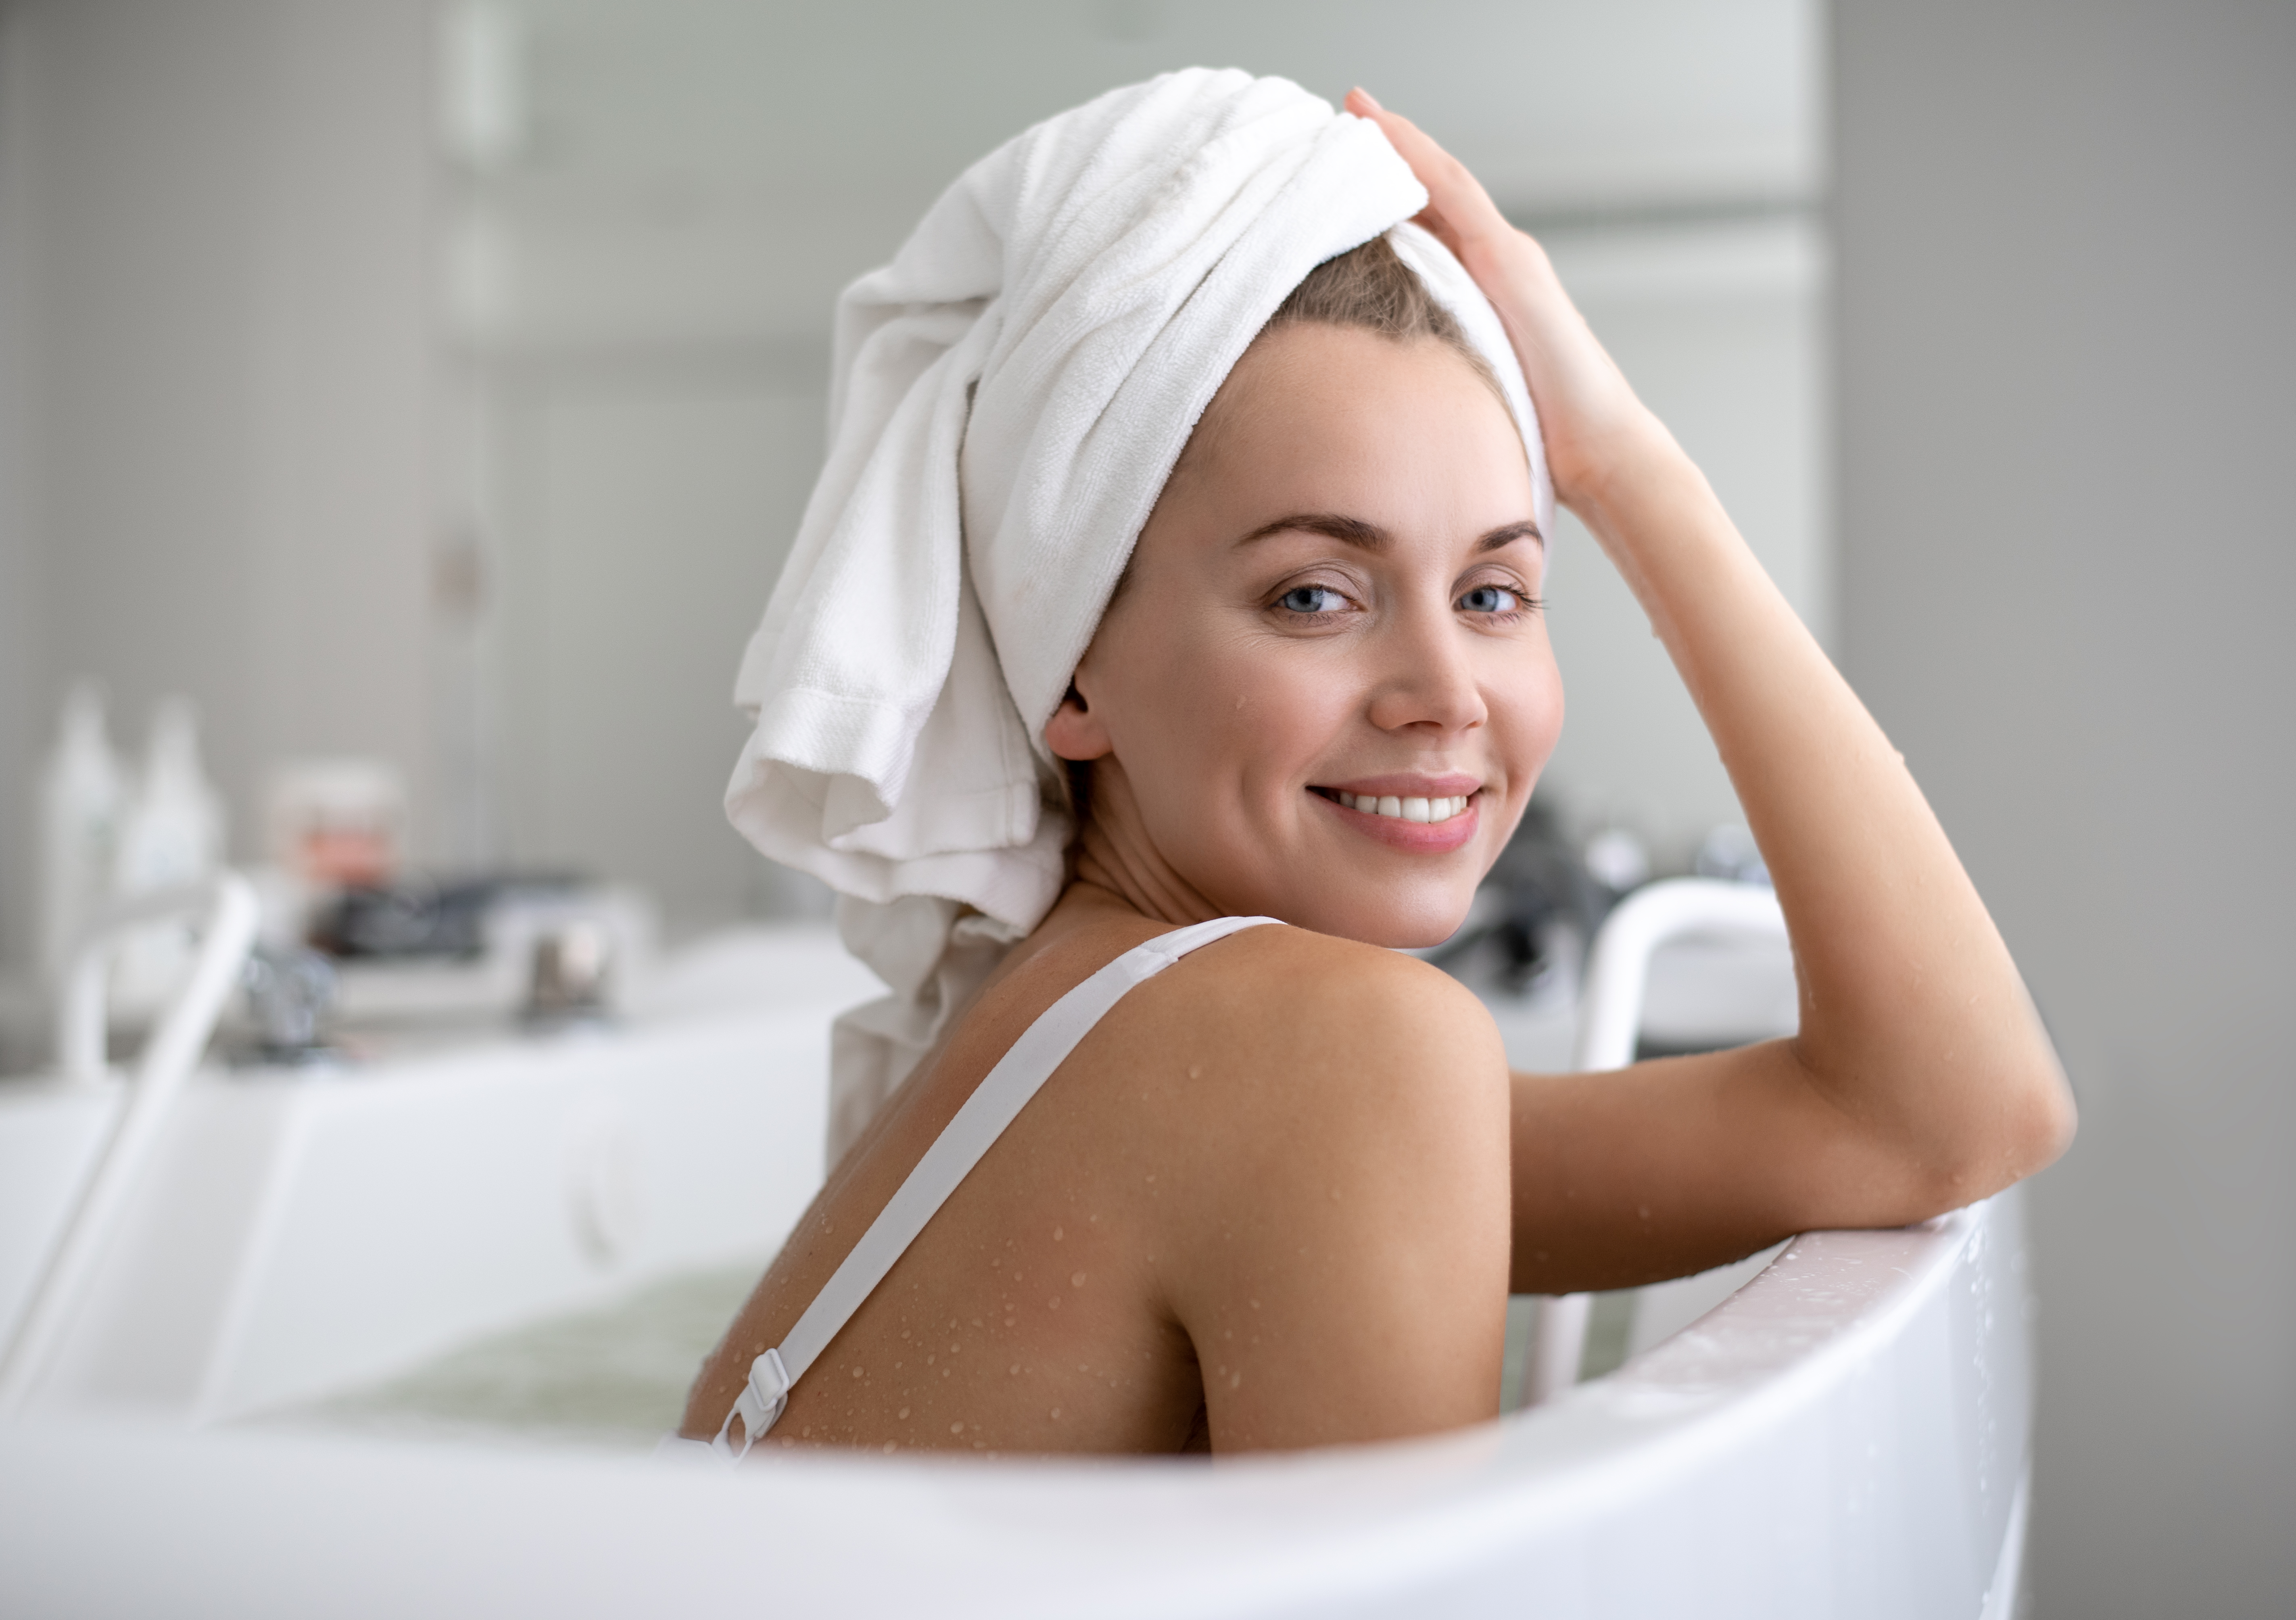 Woman sitting in the bath, smiling, with a white towel wrapped around her head